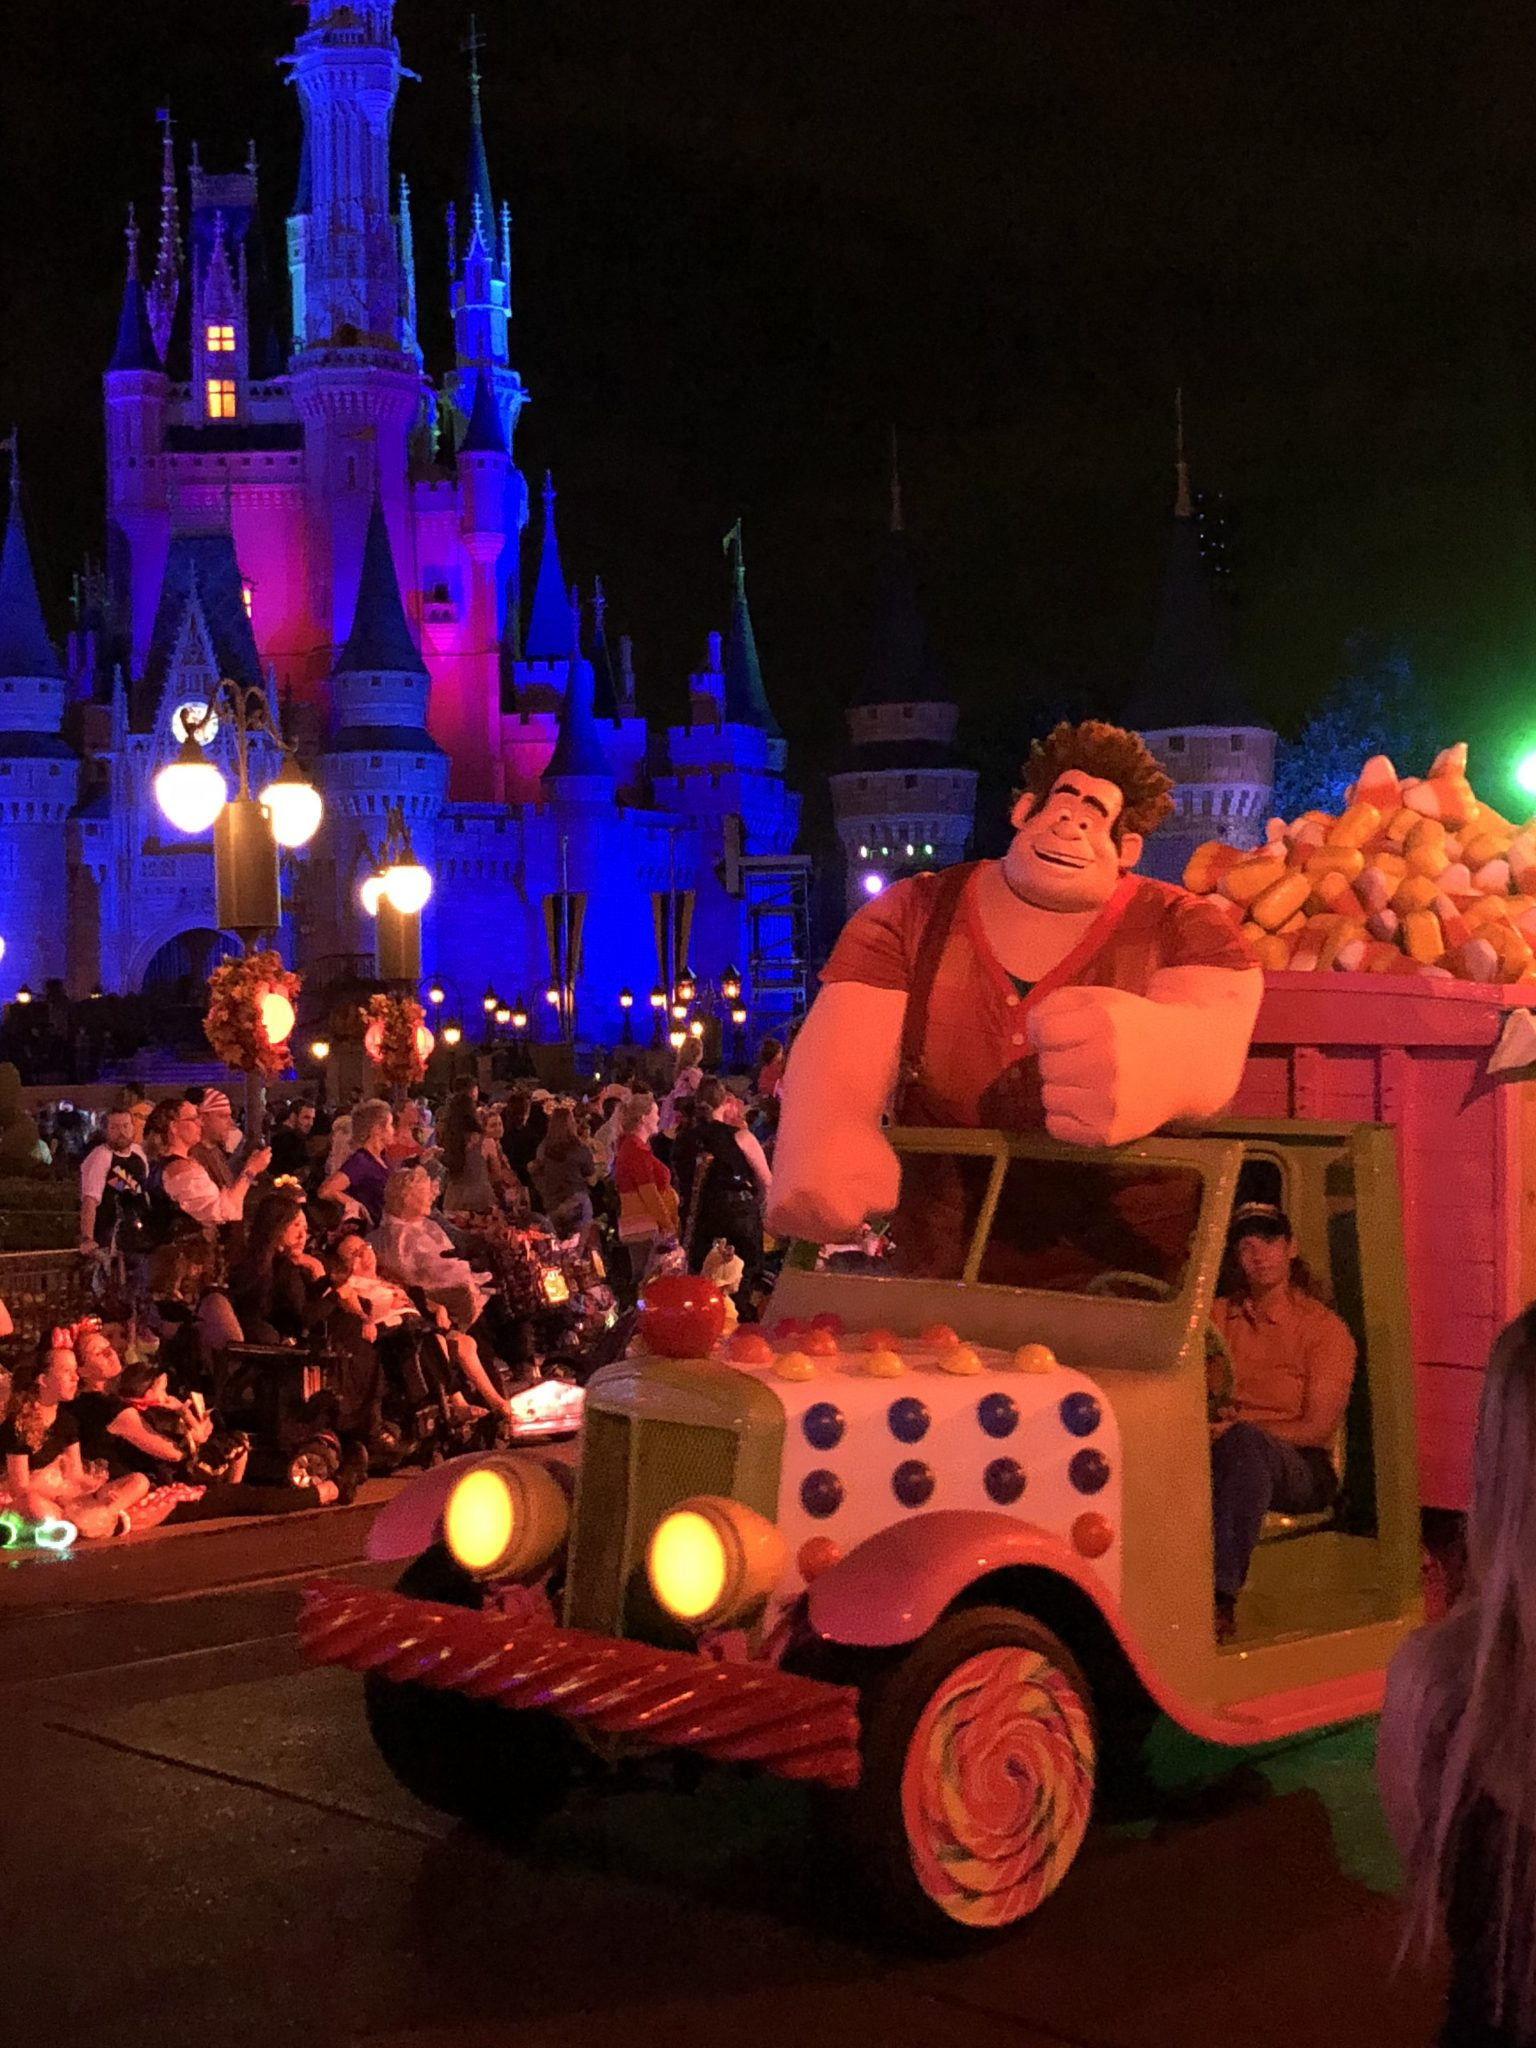 Wreck it Ralph in the Boo to You Parade | Mickeys Not So Scary: Disneys Spookiest Party | www.herlifeinruins.com